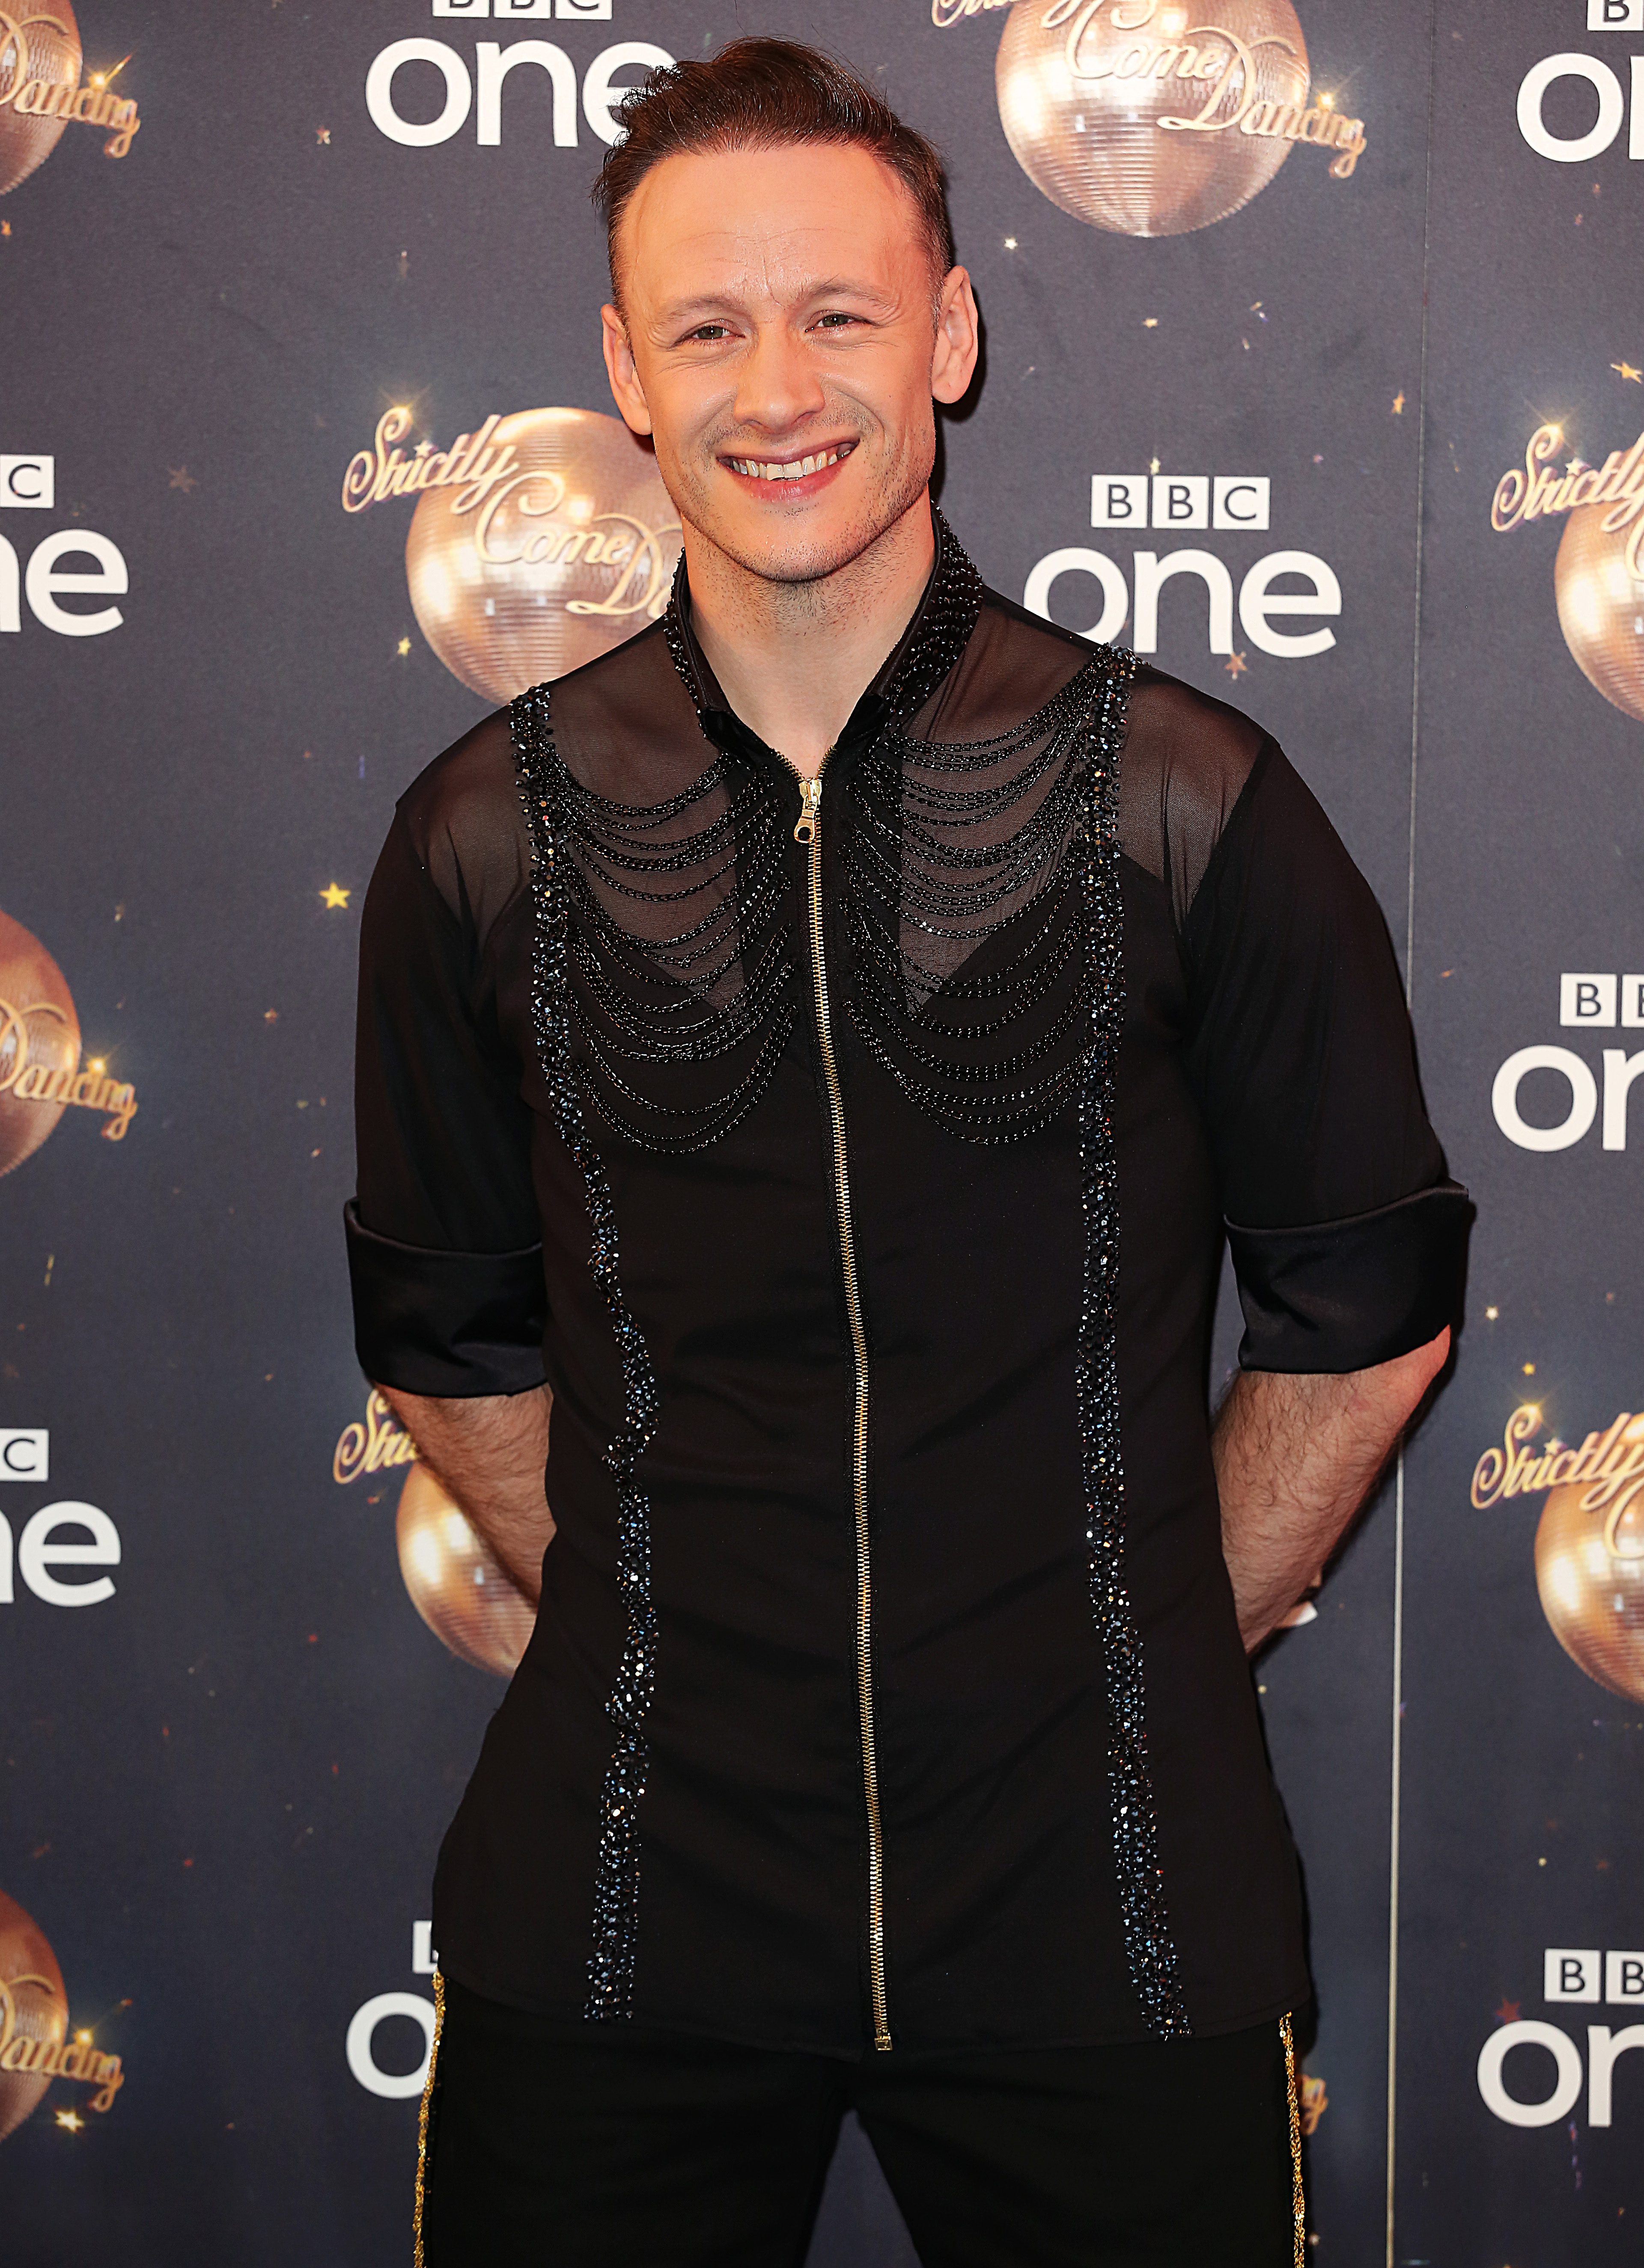 Kevin Clifton at the Strictly launch